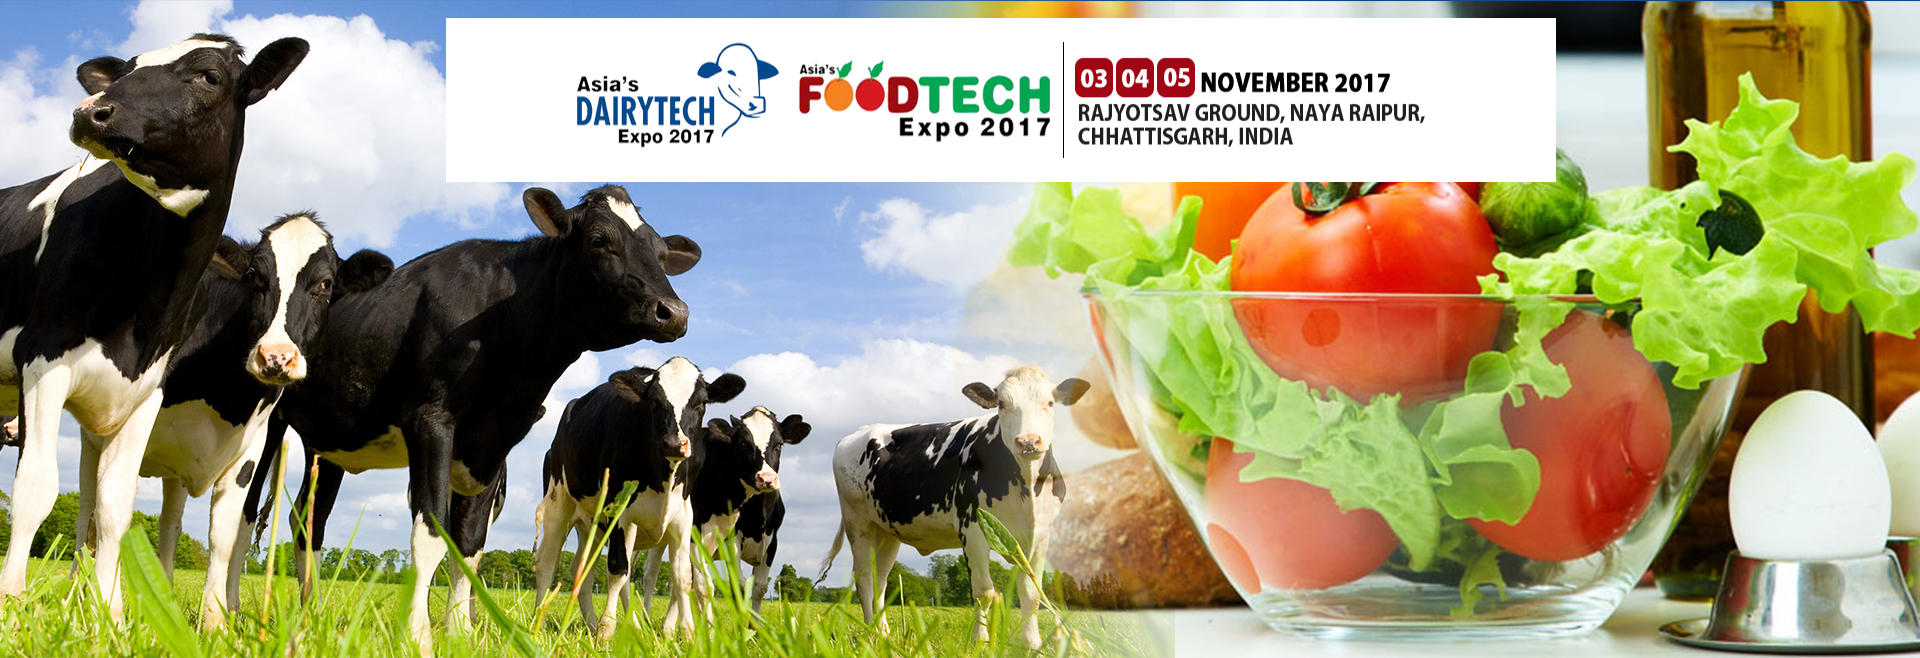 Asia's Dairy & Food Tech expo 2017